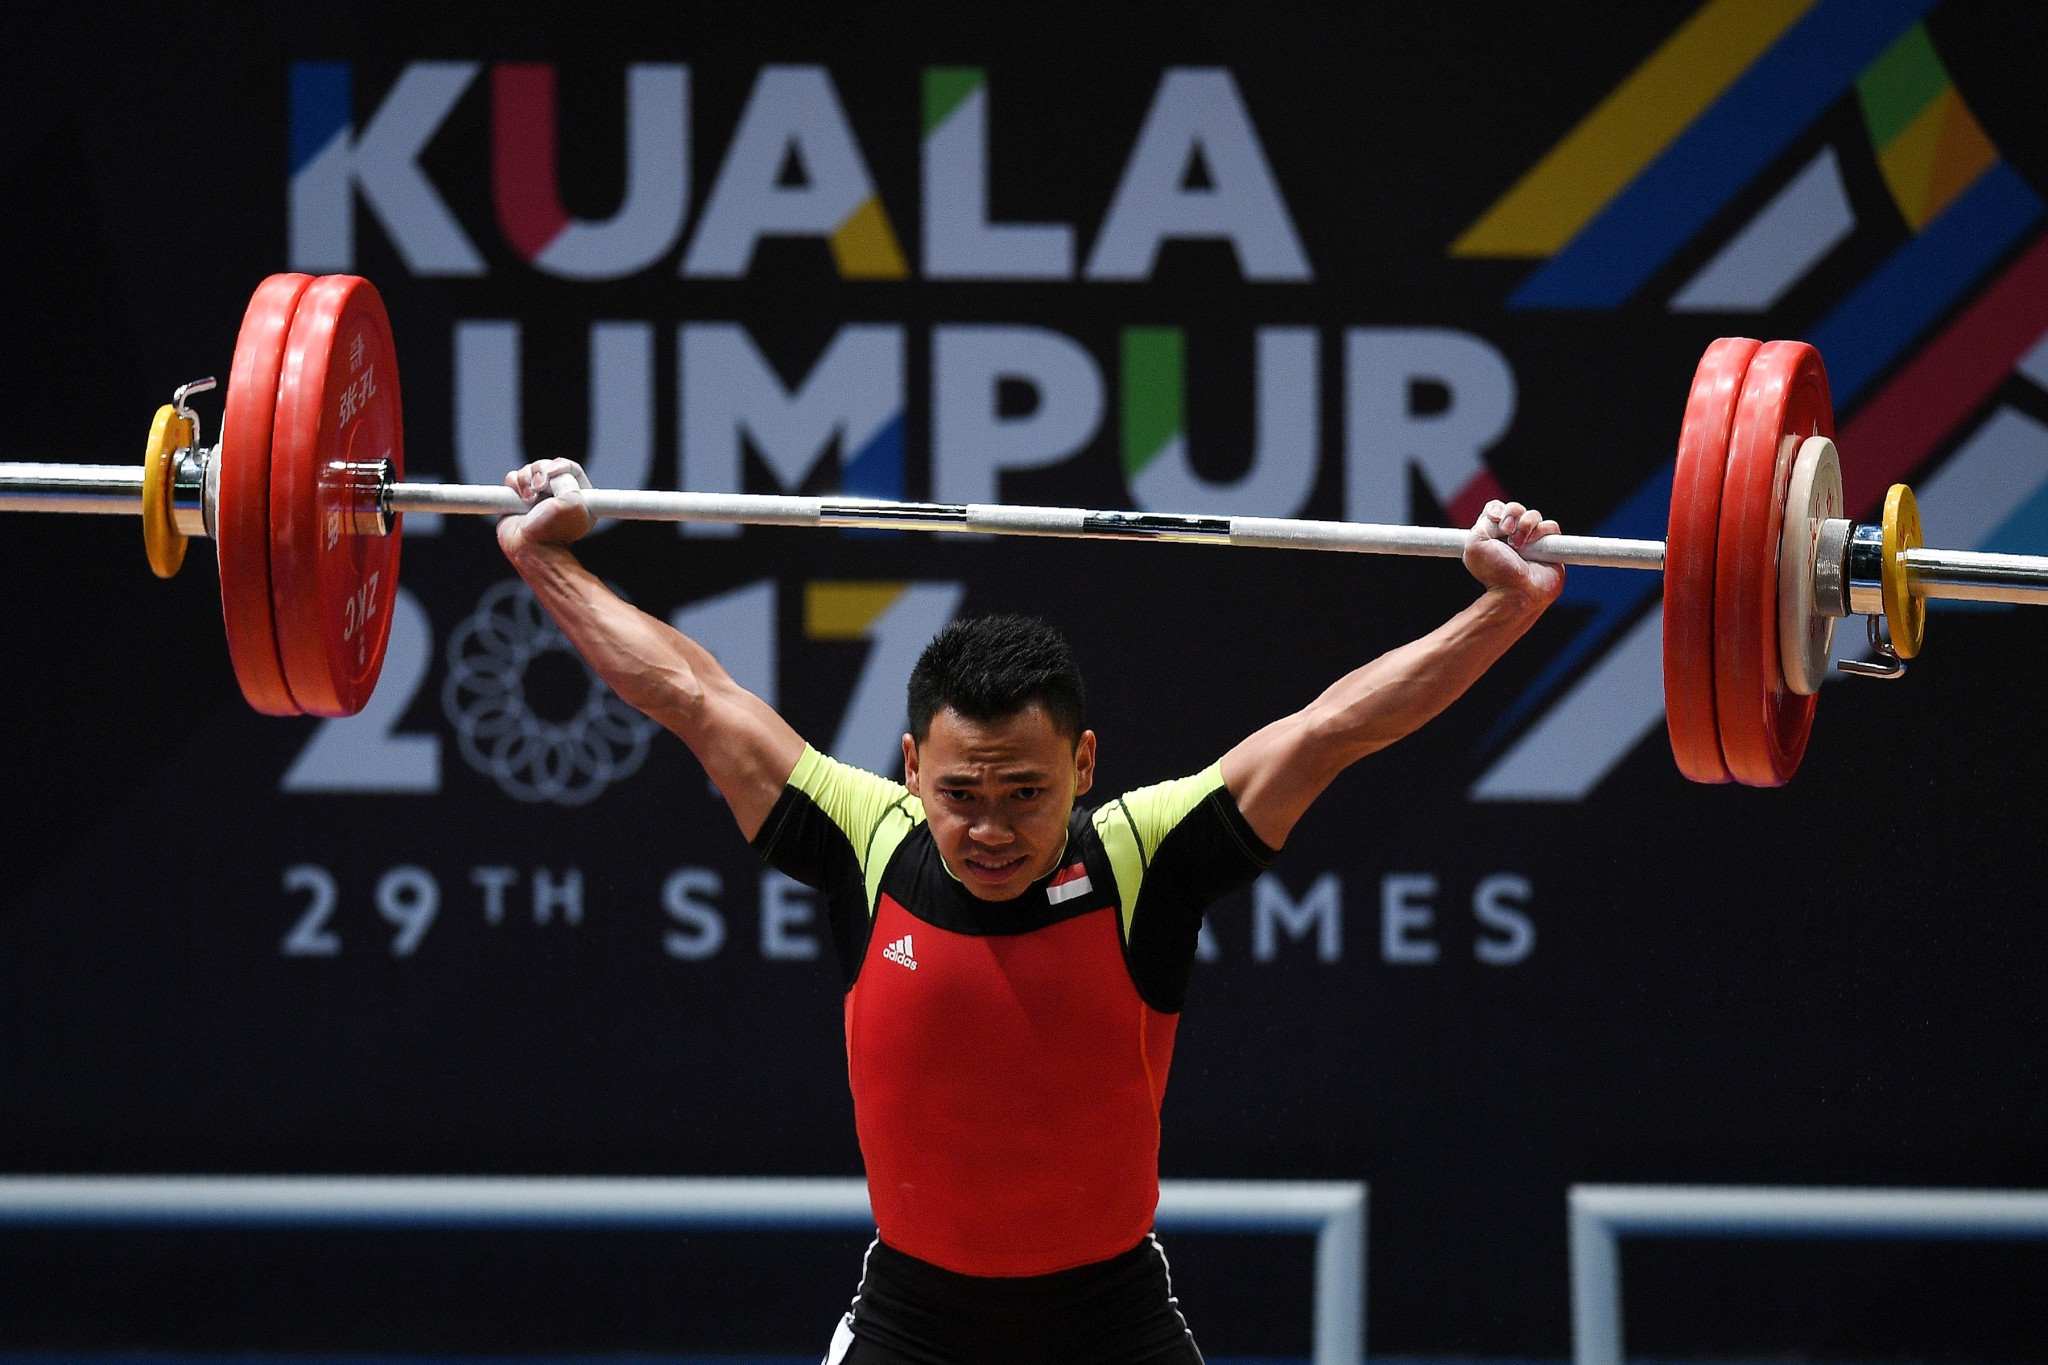 Eko Yuli Irawan of Indonesia was among the winners today ©Getty Images